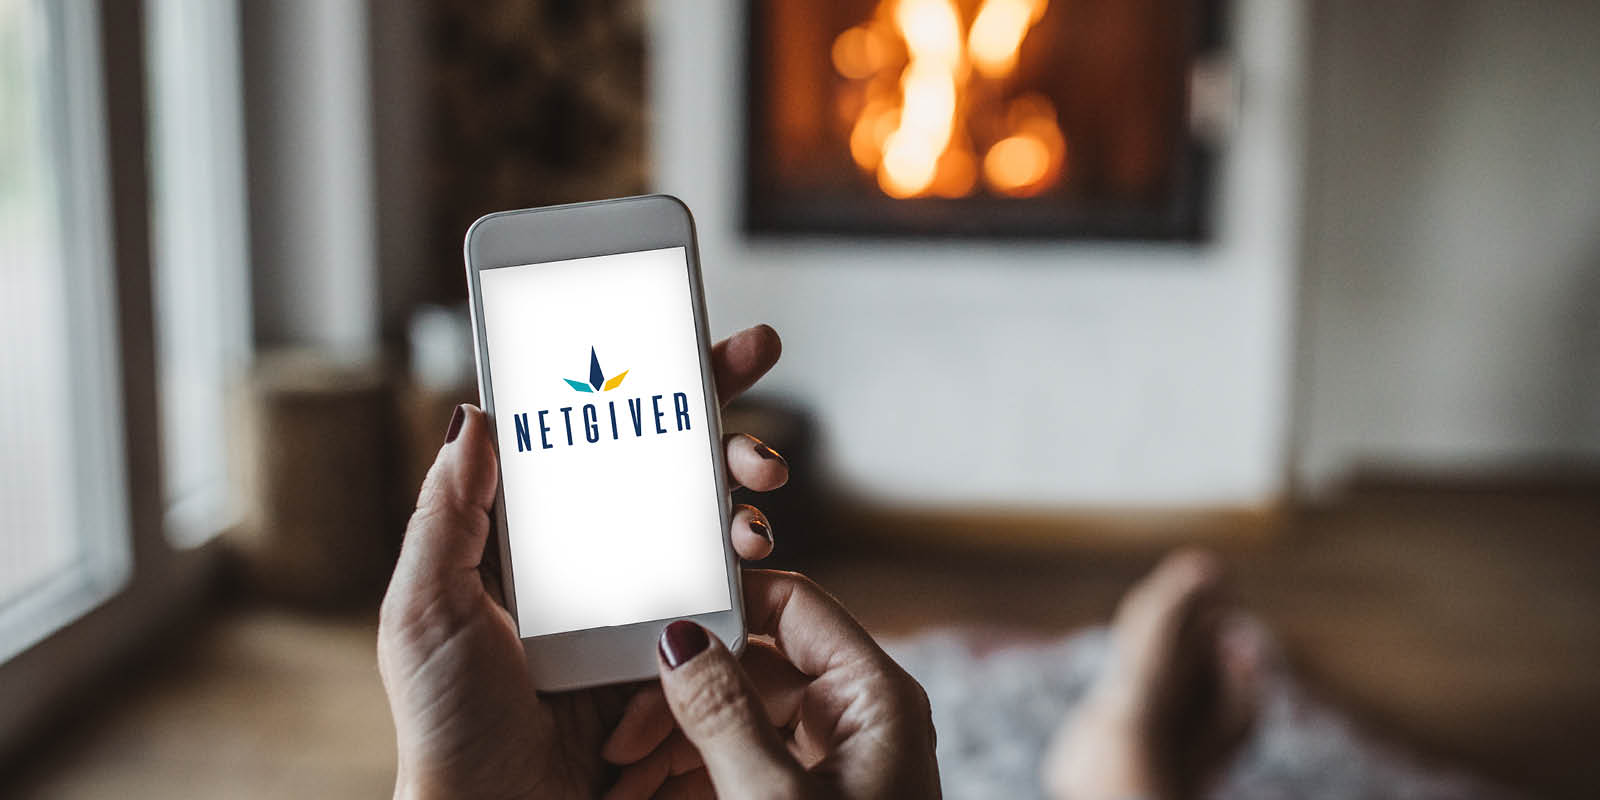 Effortless Giving. Download the NetGiver app and discover the ease of giving!